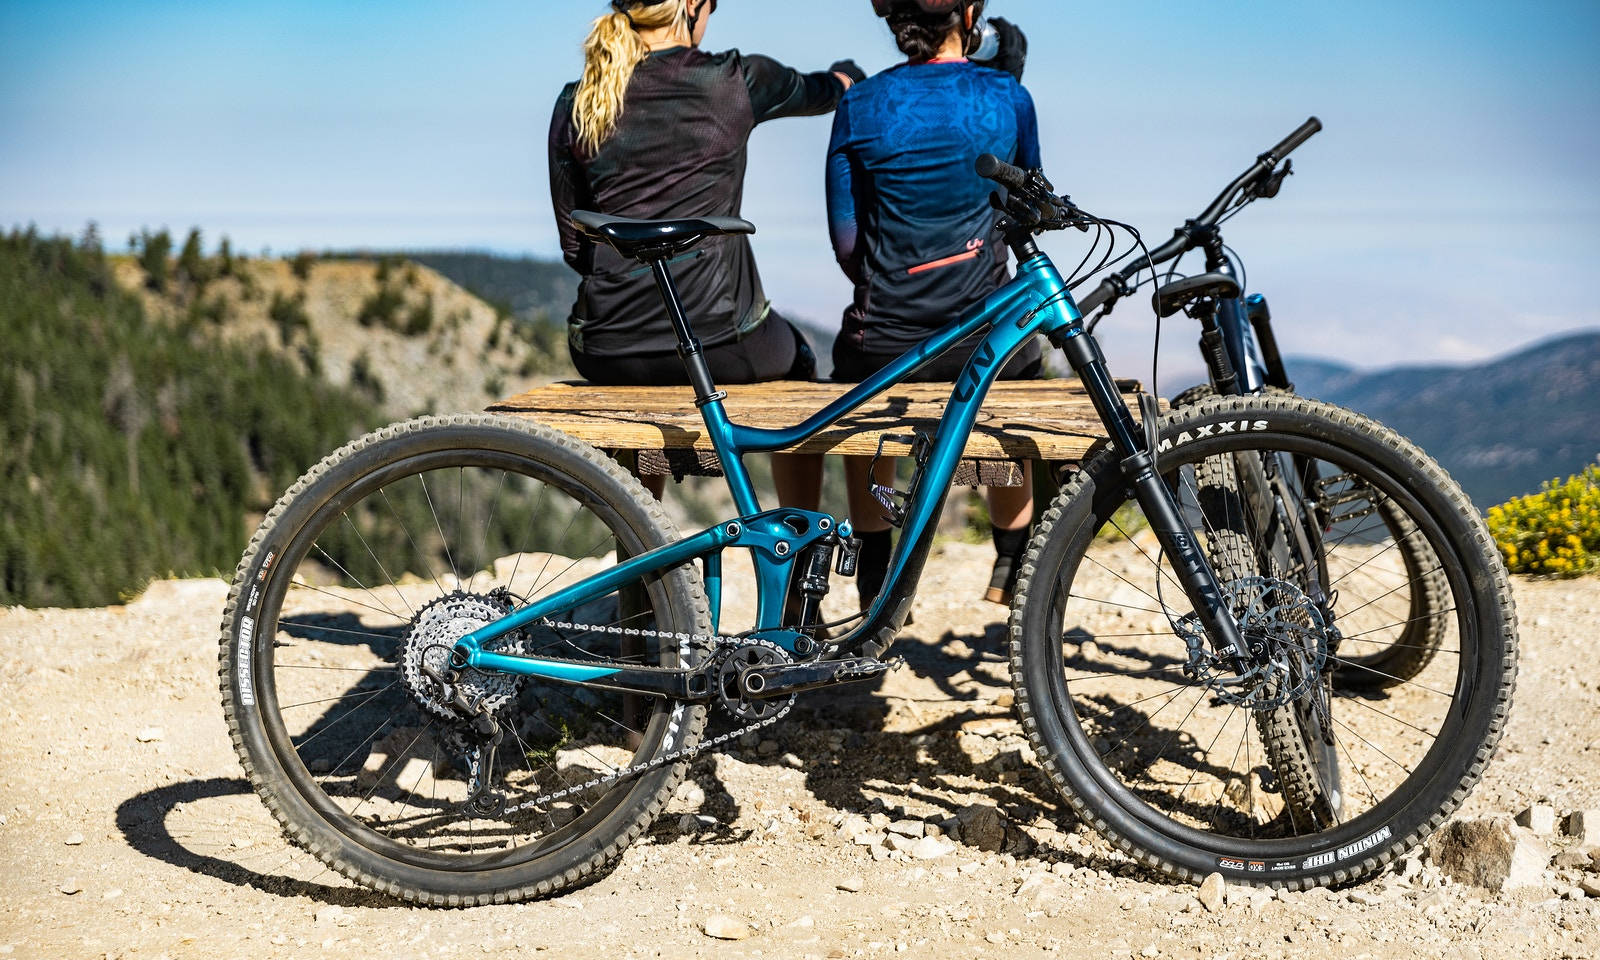 New 2021 Giant Trance X  29 and Liv Intrigue 29 Trail Mountain Bikes Explained